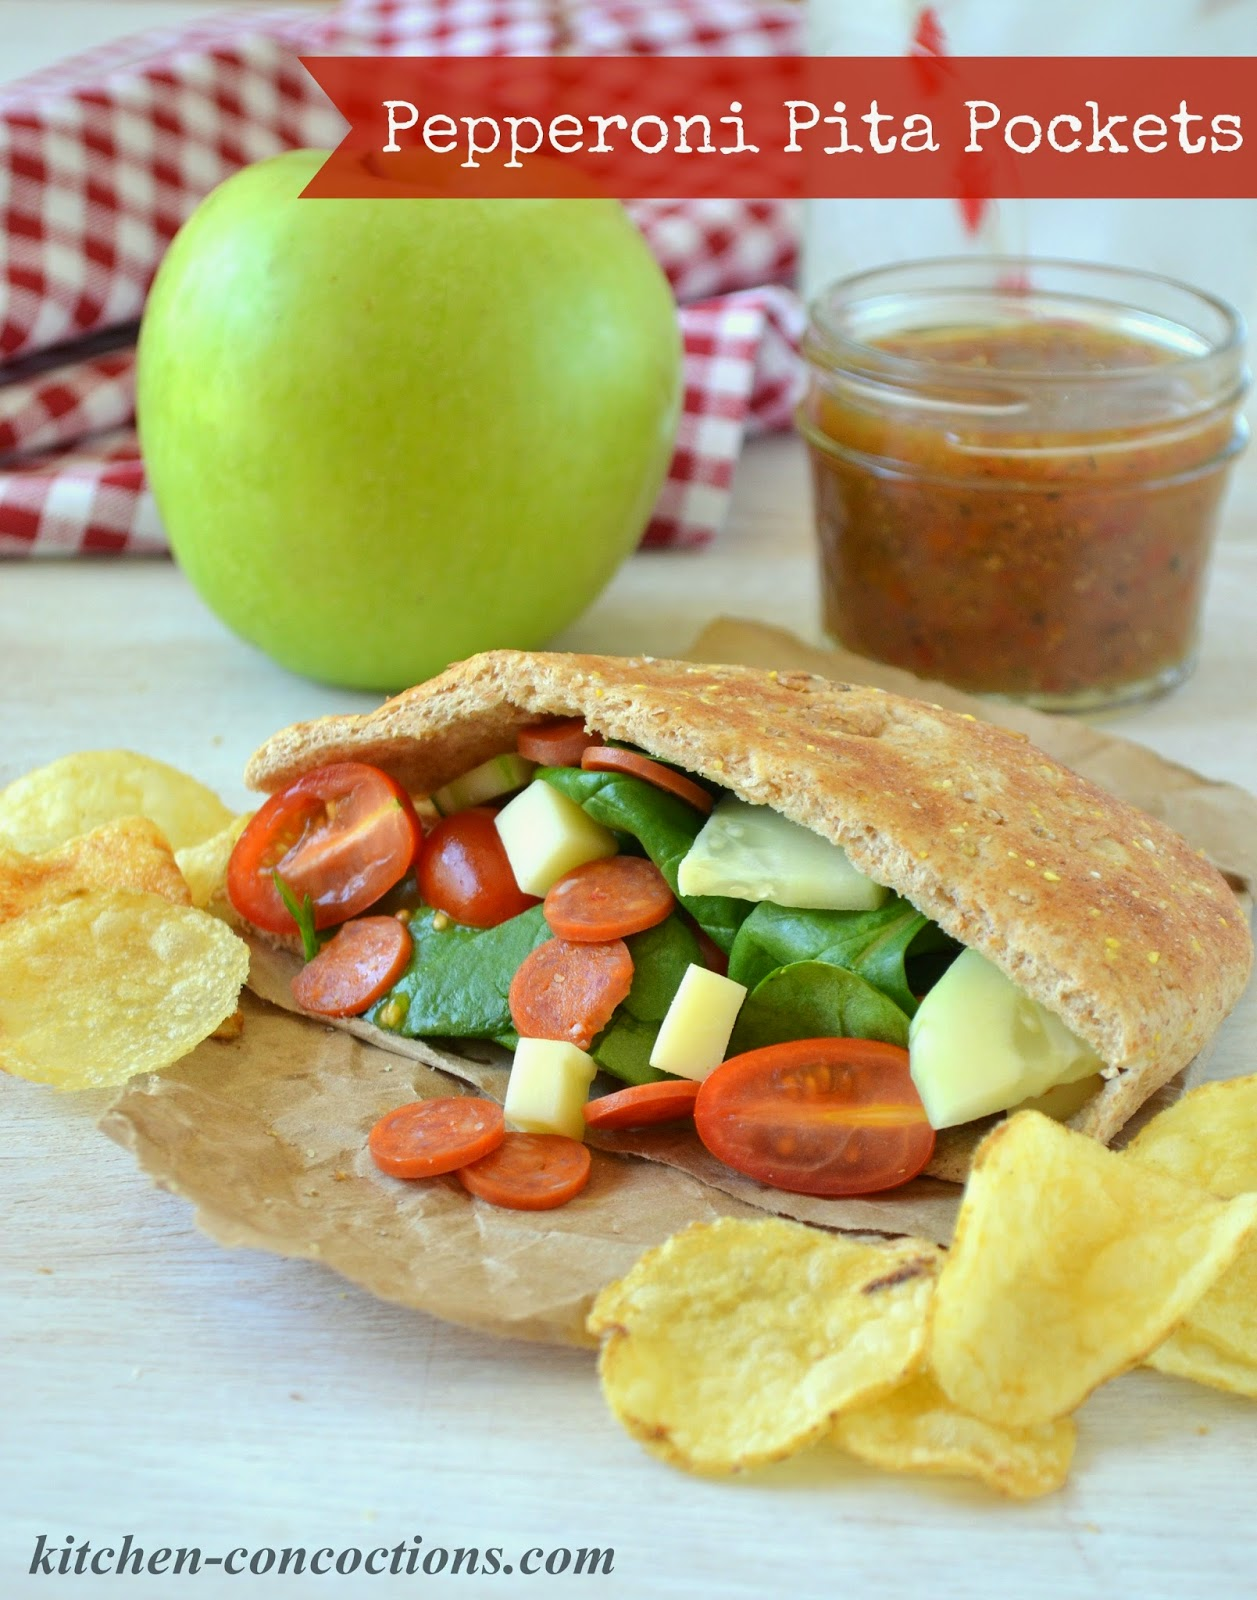 Pepperoni pita pockets kitchen concoctions many years ago i needed a break from the food and beverage industry i had worked for years working away every holiday and all my nights and weekends forumfinder Image collections